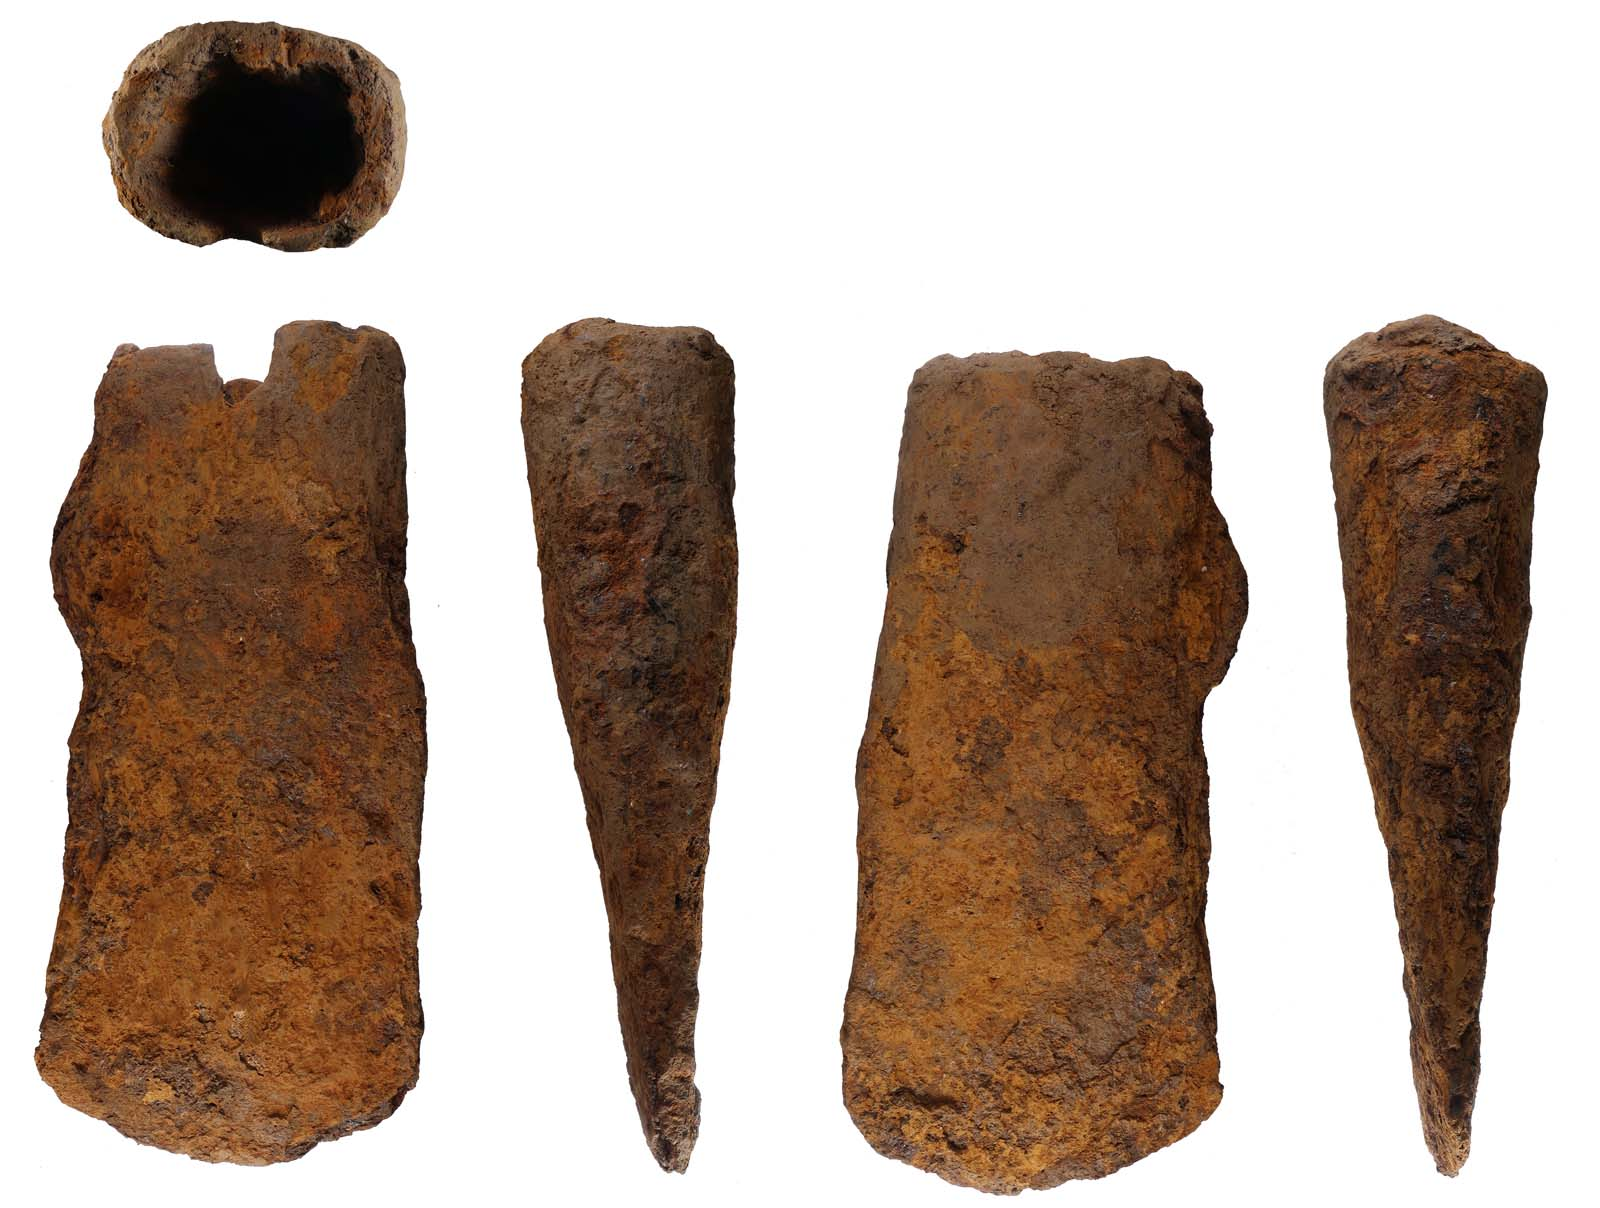 several views of a rusted metal axe head